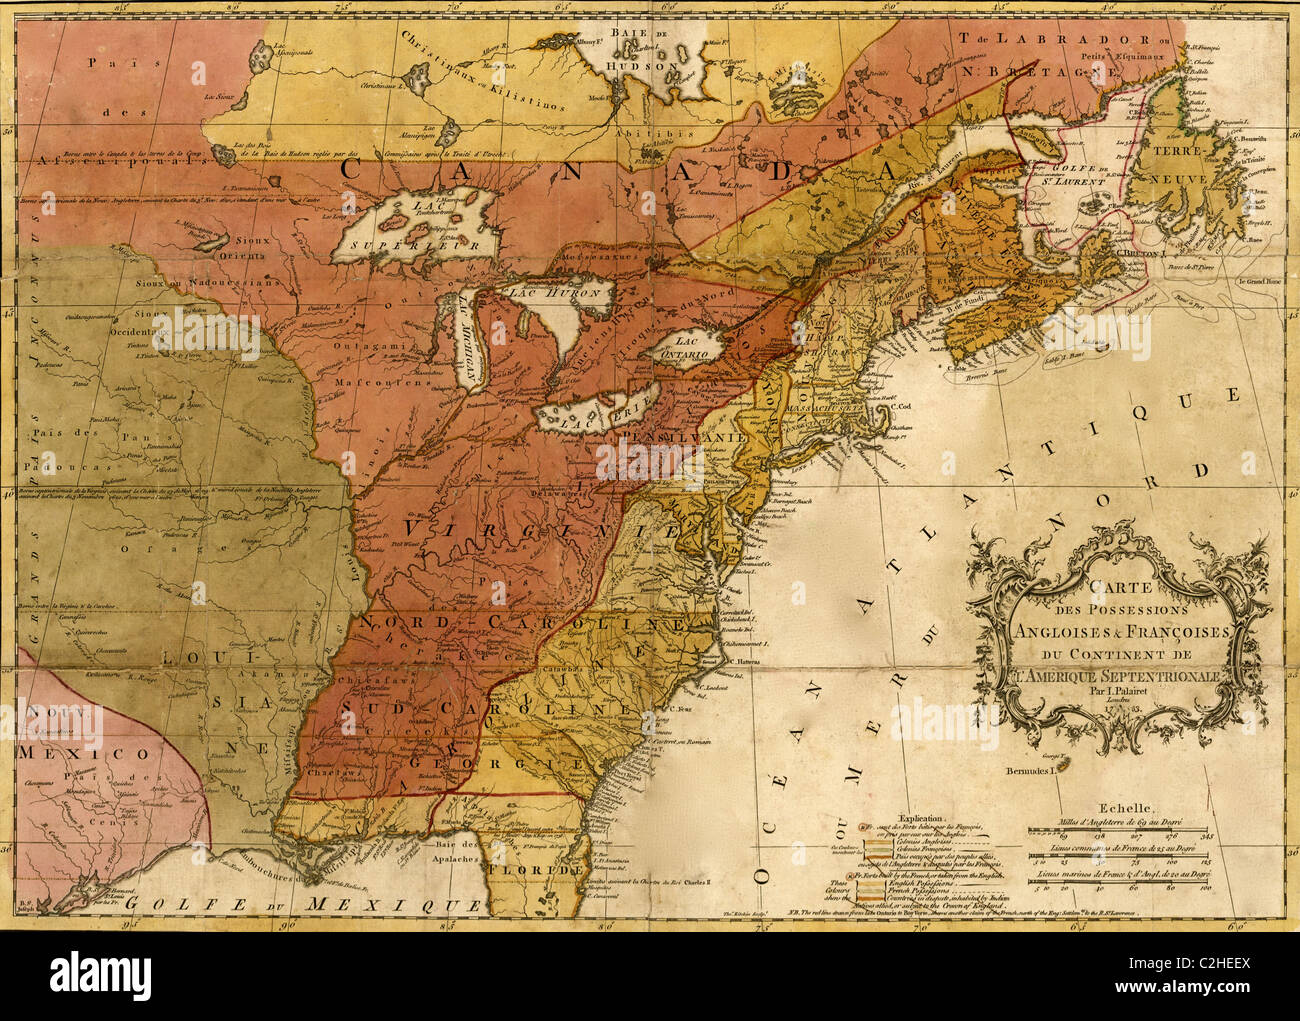 Map Of North America 1763.English French Possessions In North America 1763 Stock Photo